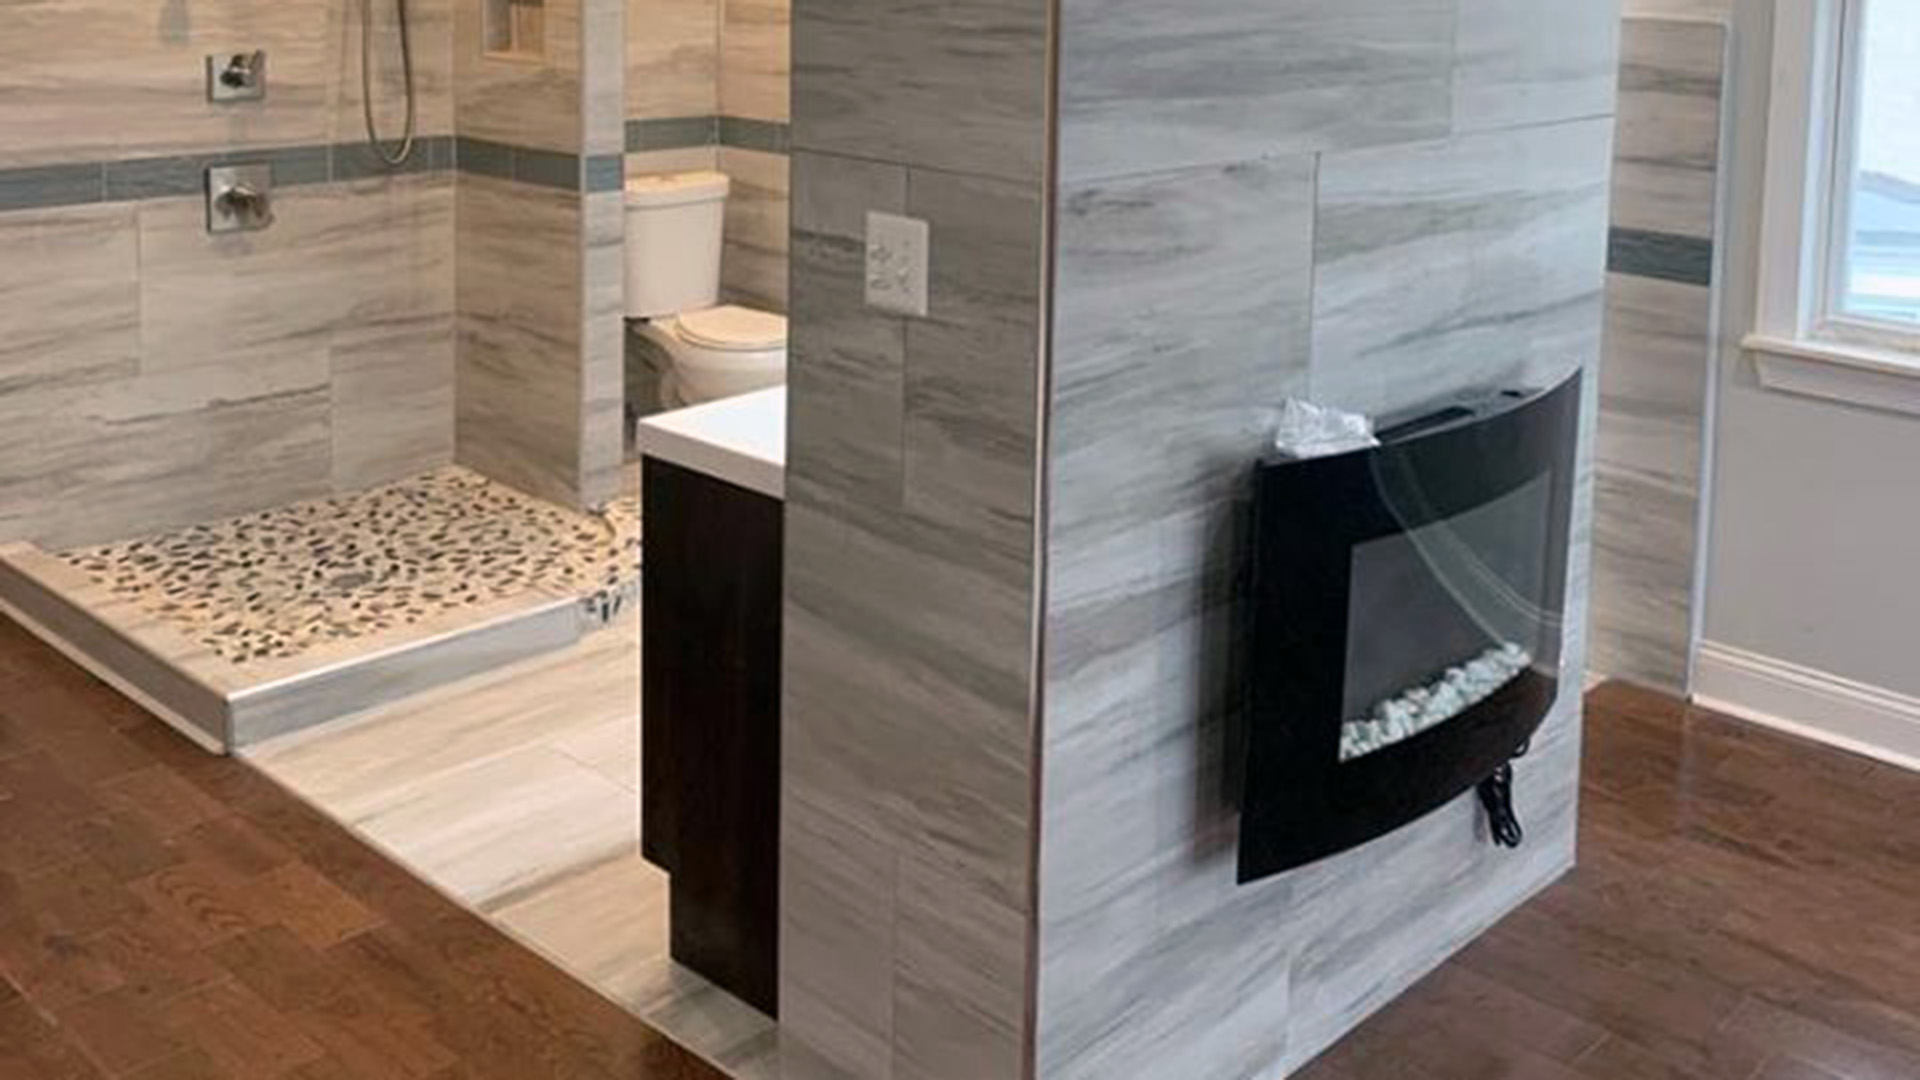 Open Concept Bathrooms Are A Thing It, Open Concept Bathroom